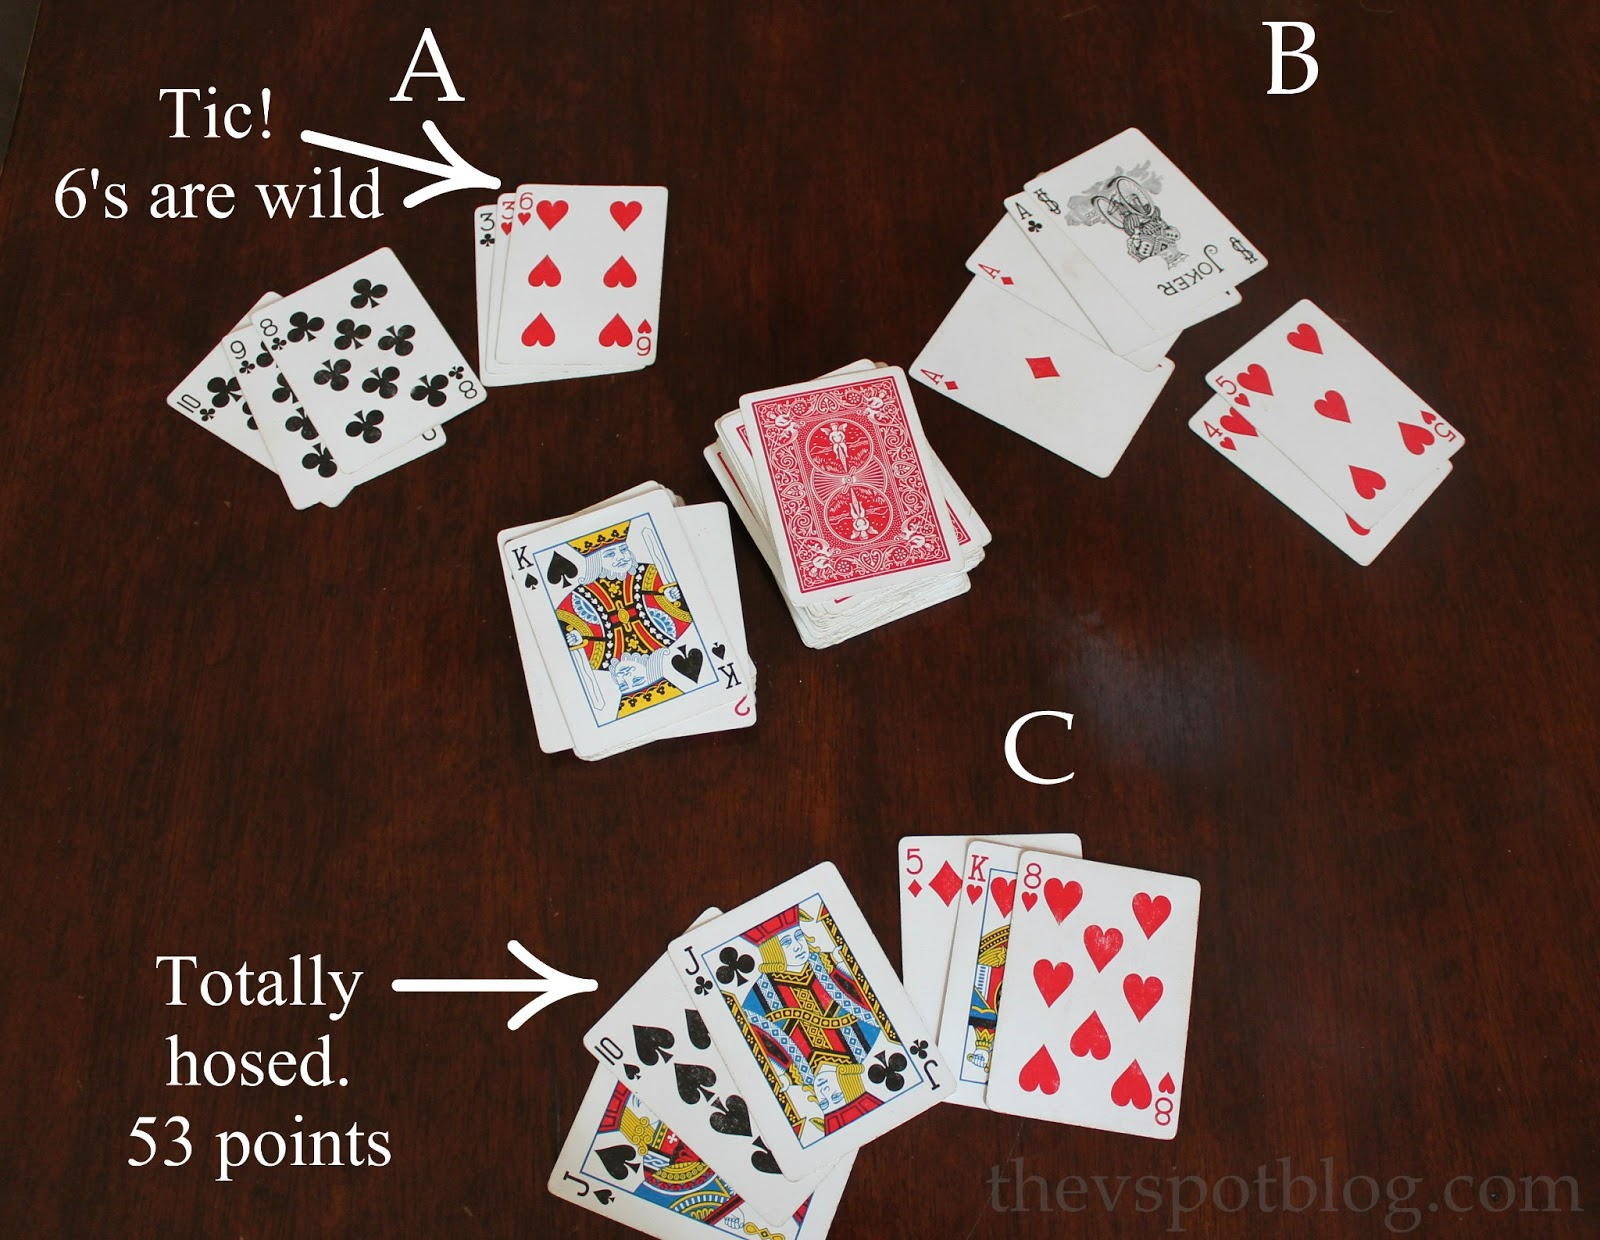 6 person card games